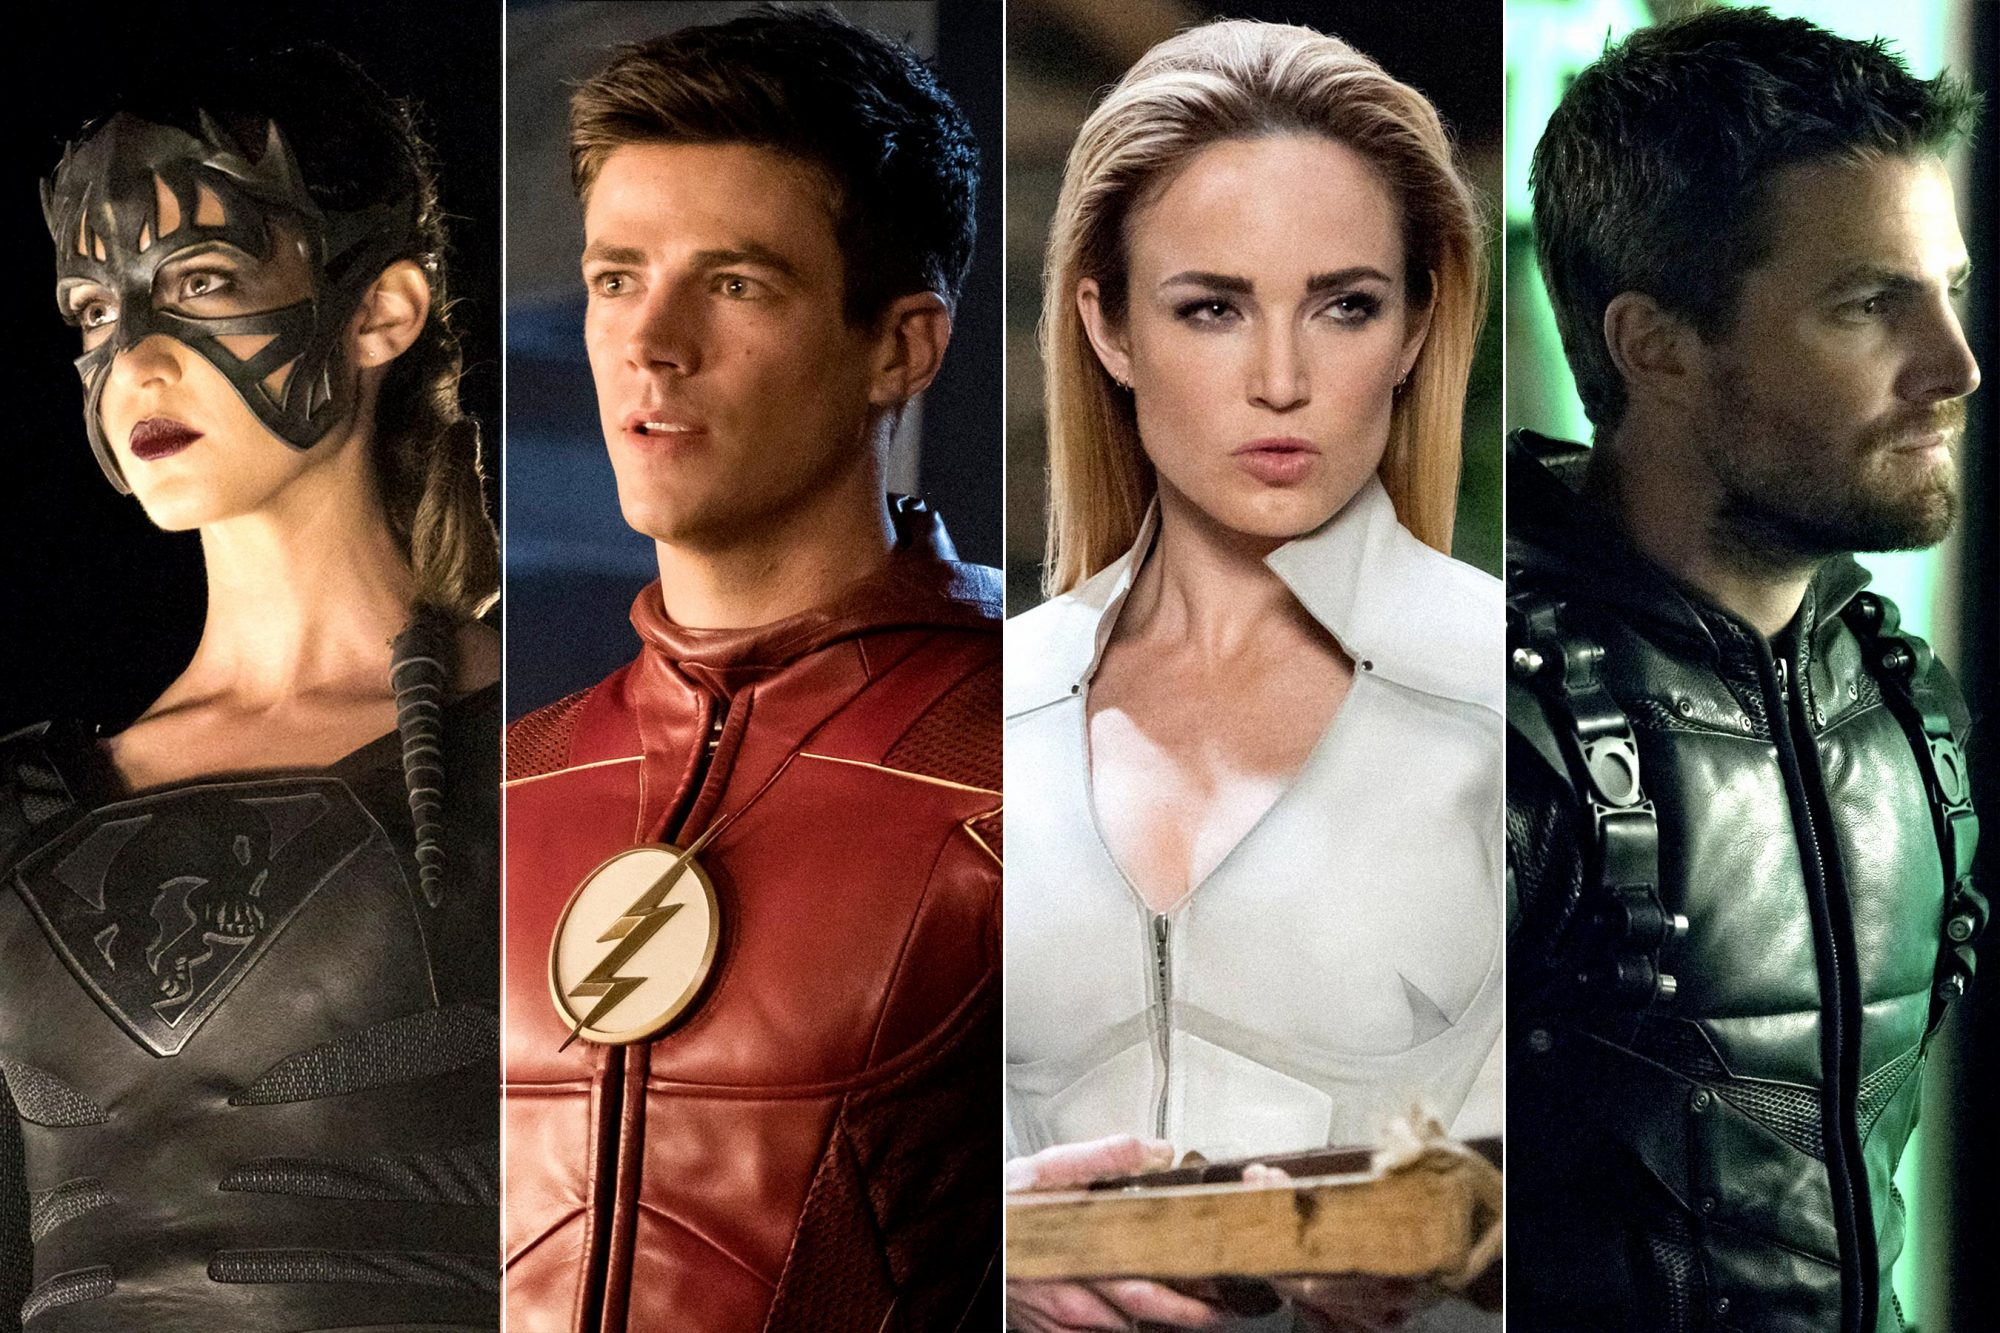 Supergirl / The Flash / DC's Legends of Tomorrow / Arrow